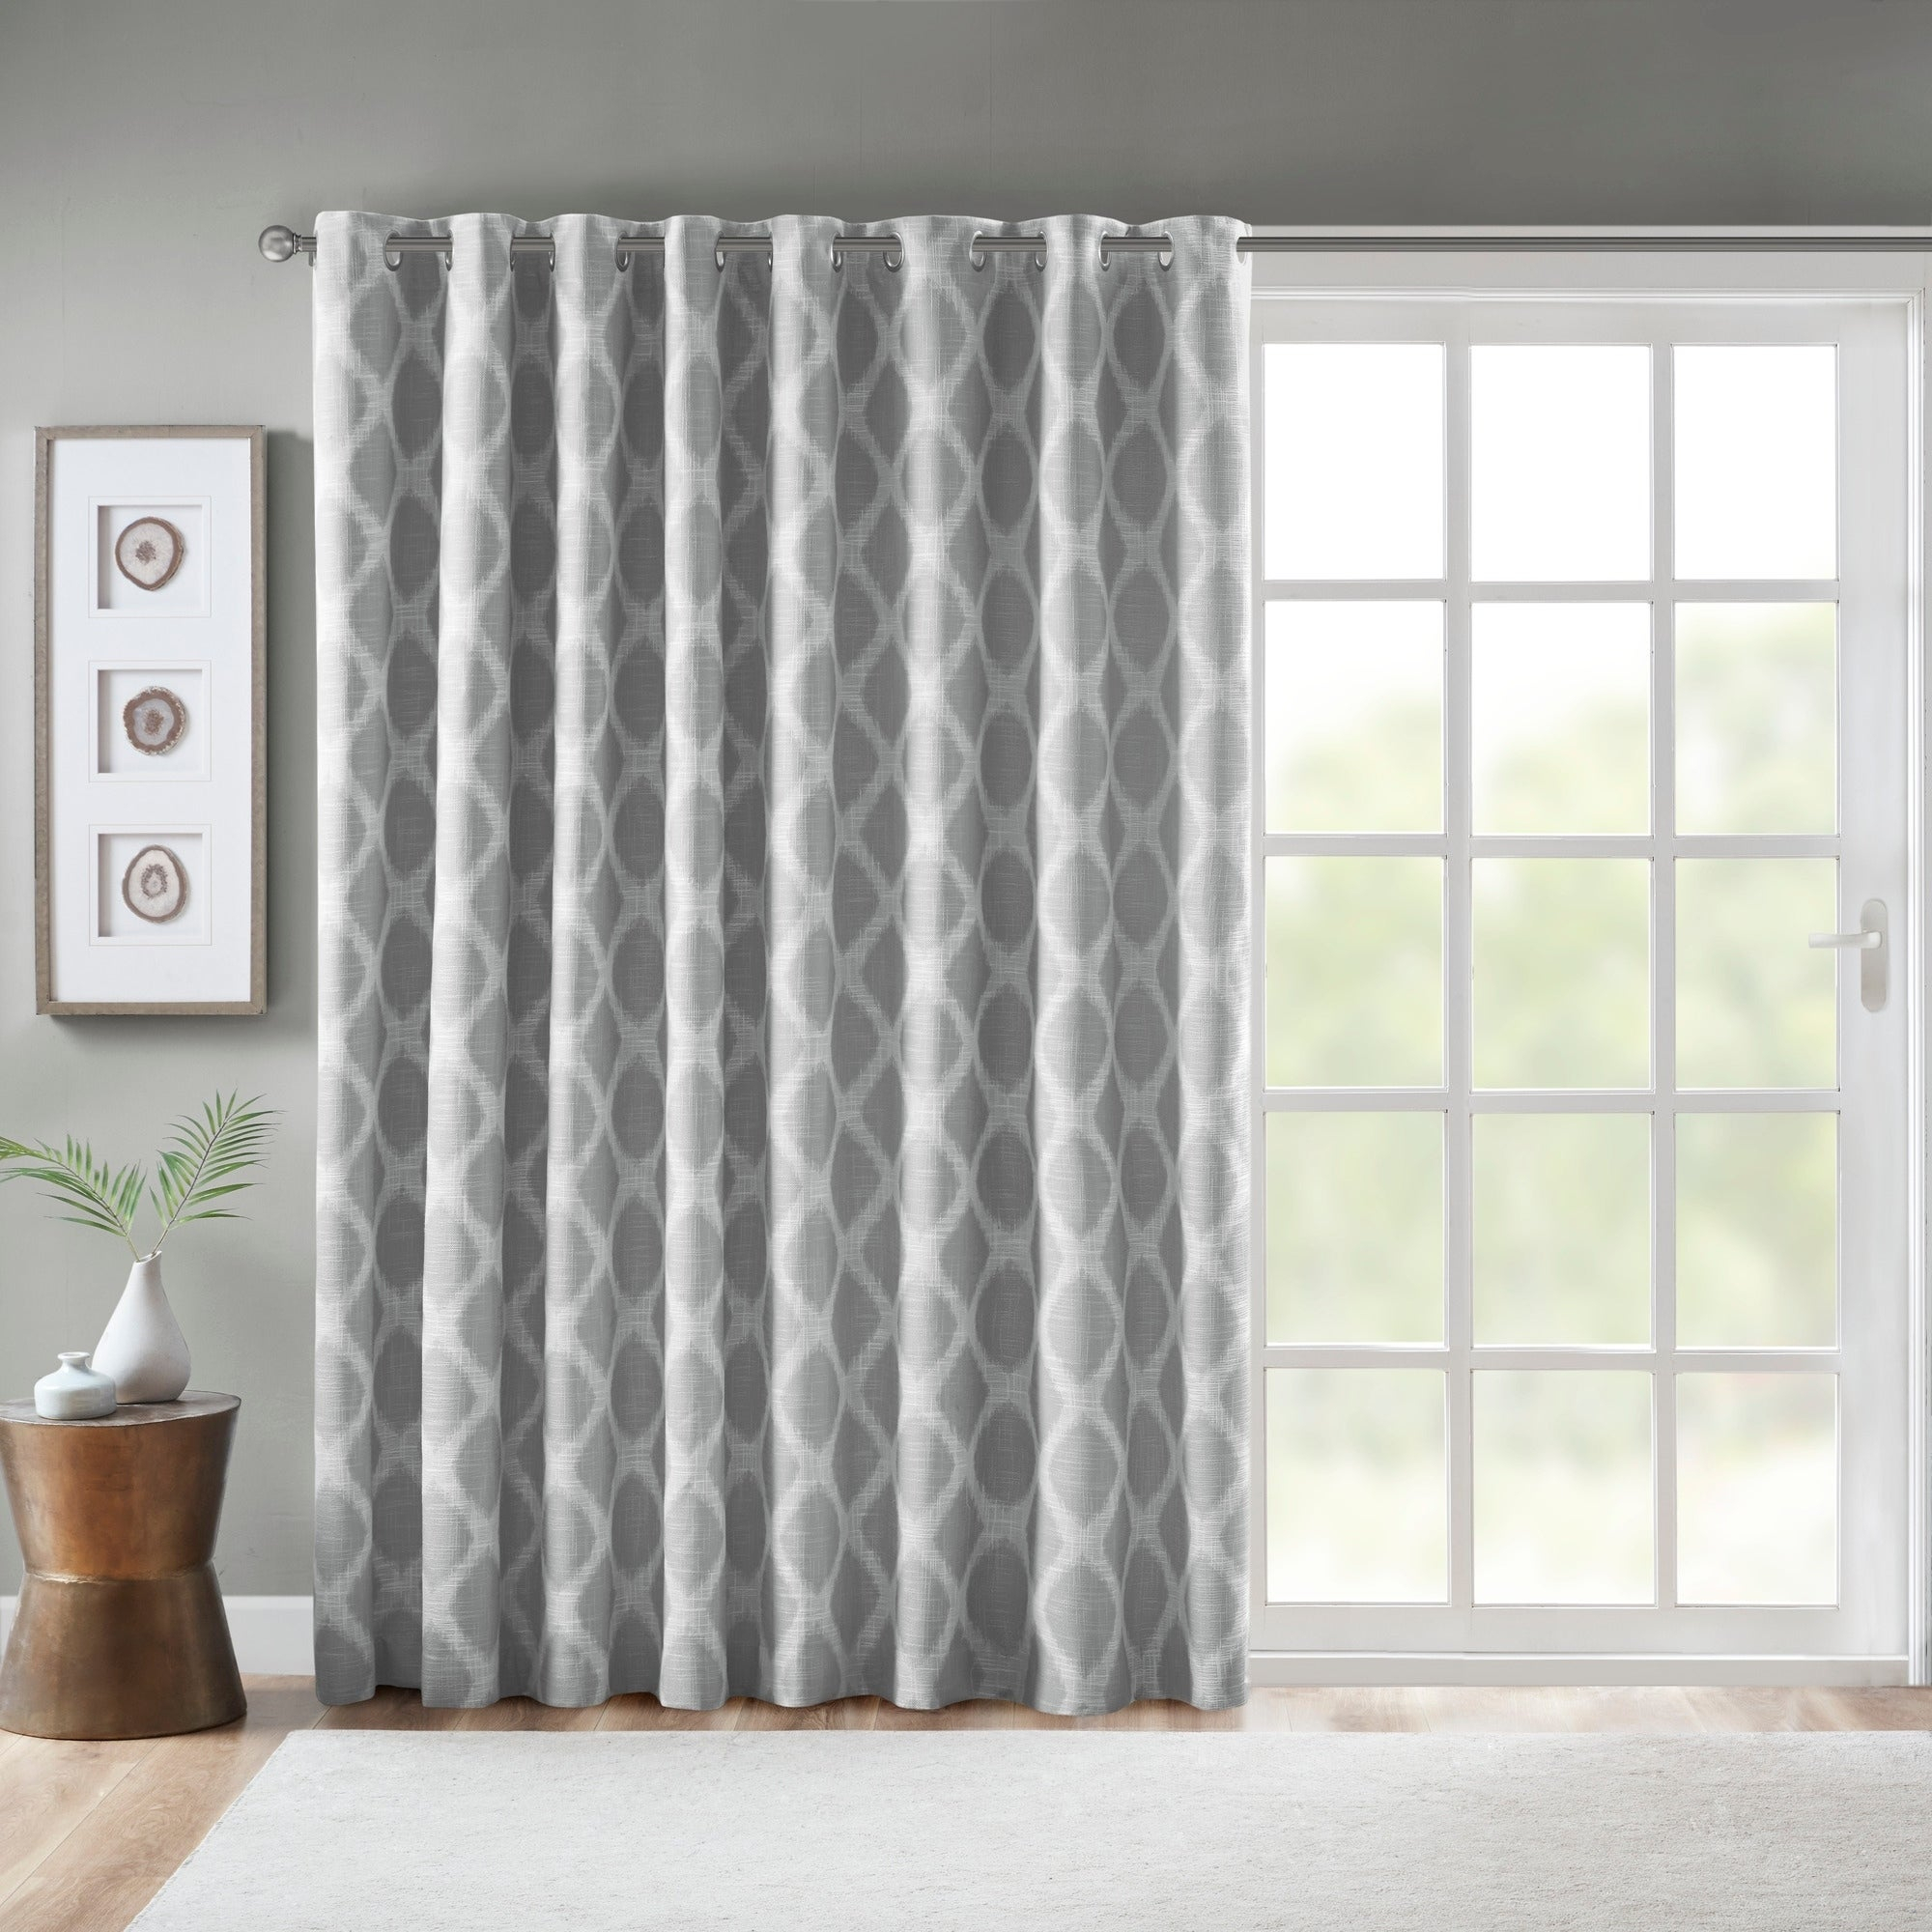 Sunsmart Kagen Printed Ikat Blackout Patio Curtain Intended For Gracewood Hollow Tucakovic Energy Efficient Fabric Blackout Curtains (View 2 of 20)